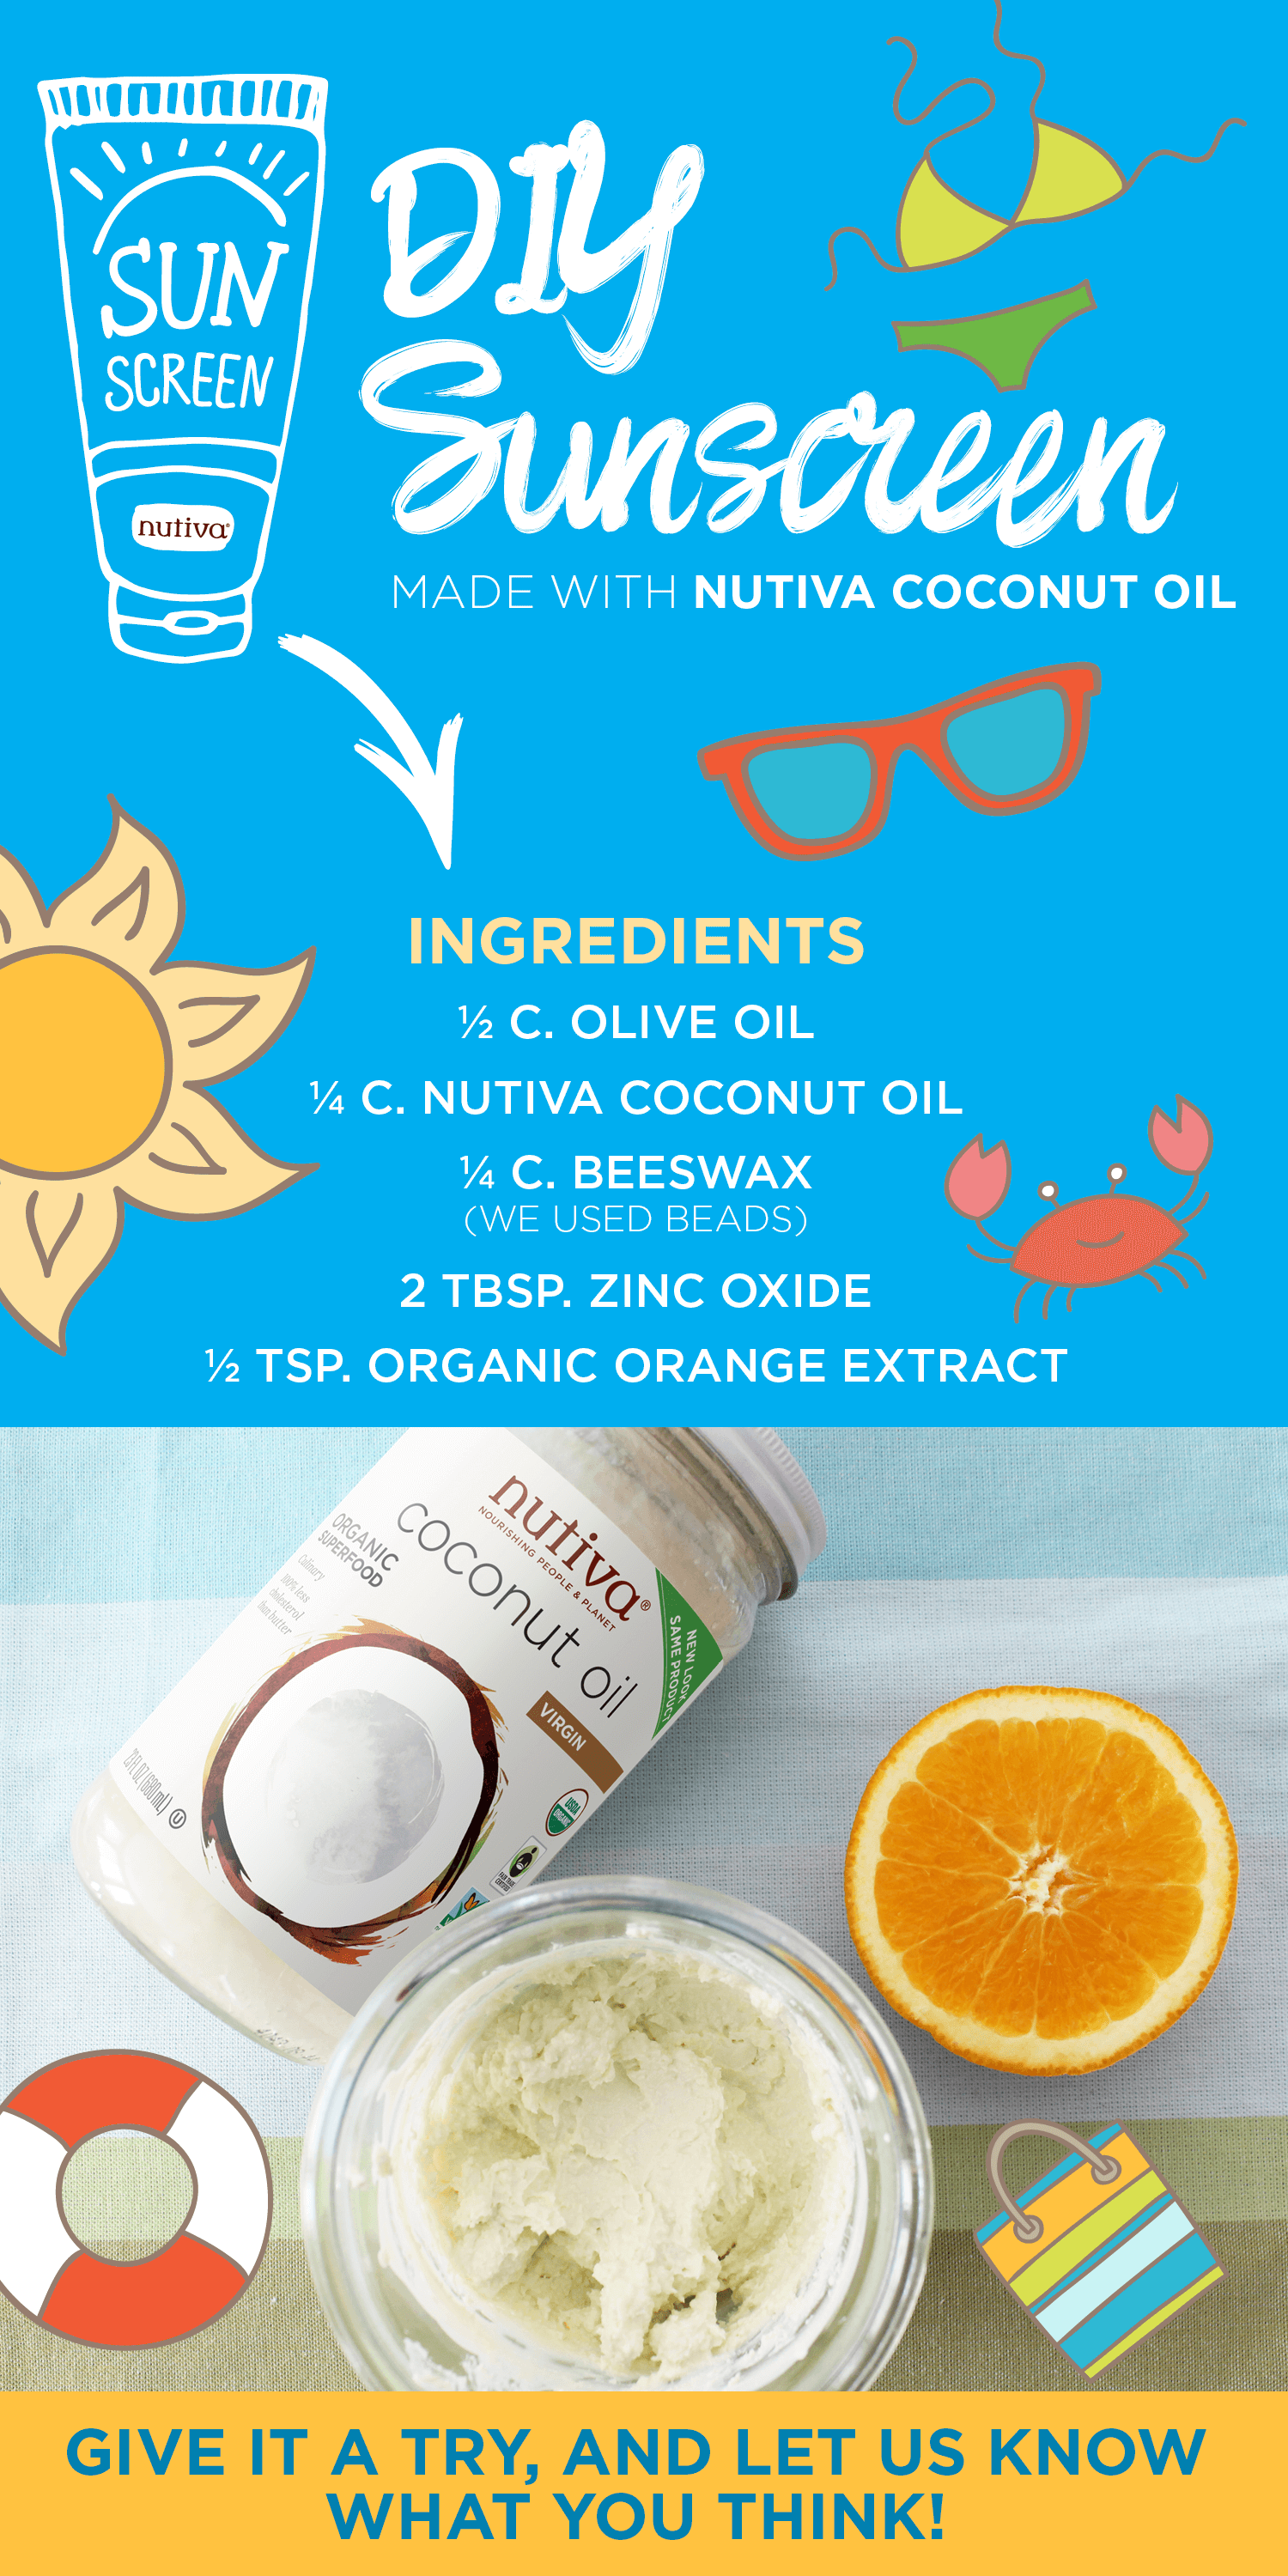 DIY Sunscreen with Nutiva Coconut Oil agutsygirl.com #sunscreen #natural #summer